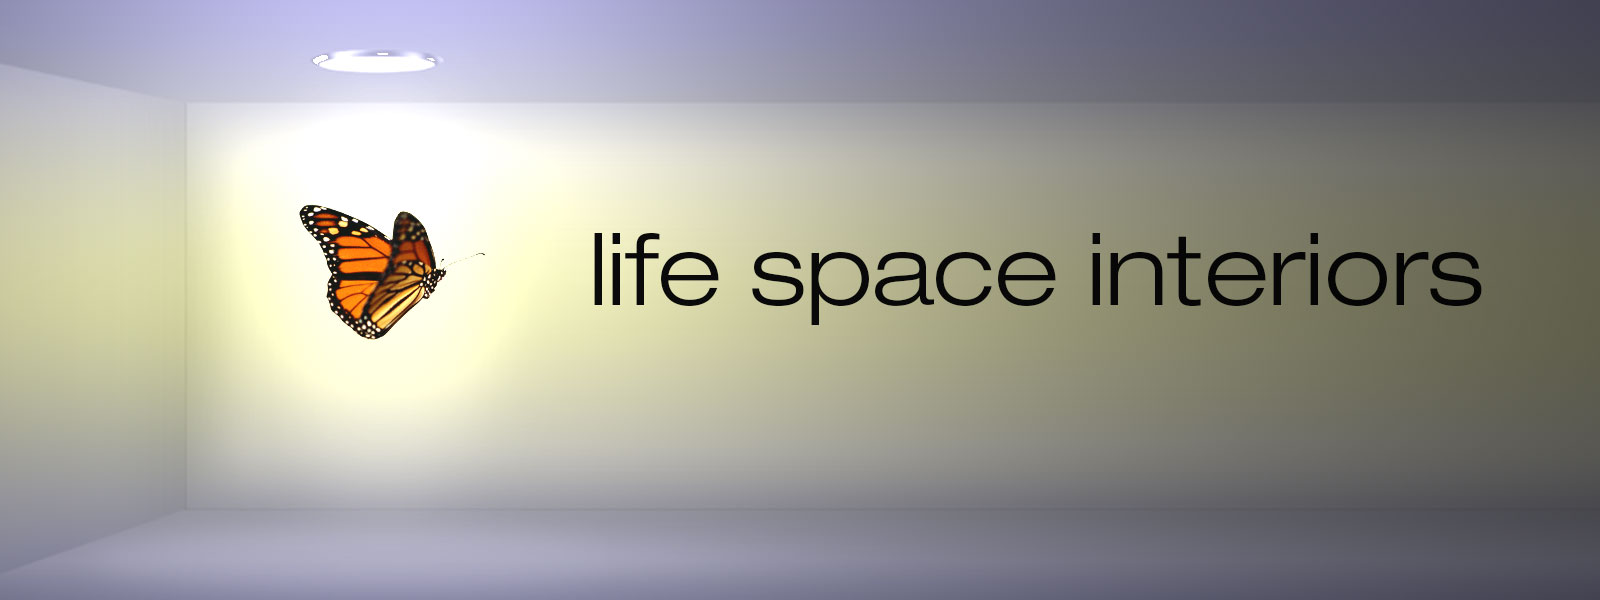 background logo life space interiors